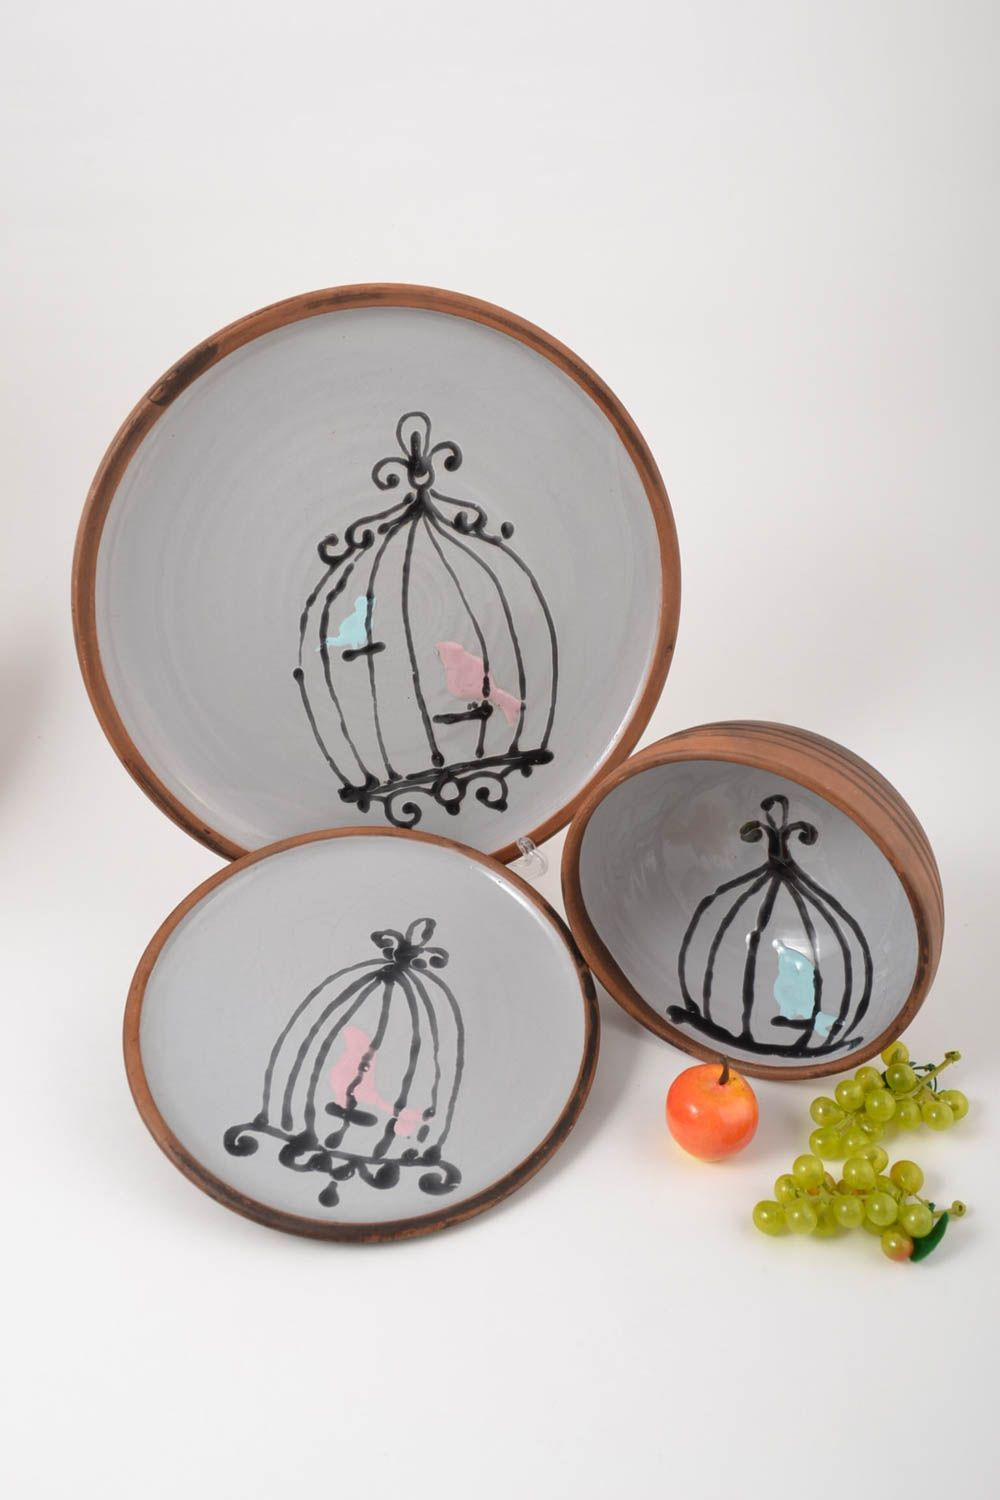 dinnerware sets Ceramic designer plates unusual handmade kitchenware 3 stylish lovely plates - MADEheart.com & MADEHEART u003e Ceramic designer plates unusual handmade kitchenware 3 ...